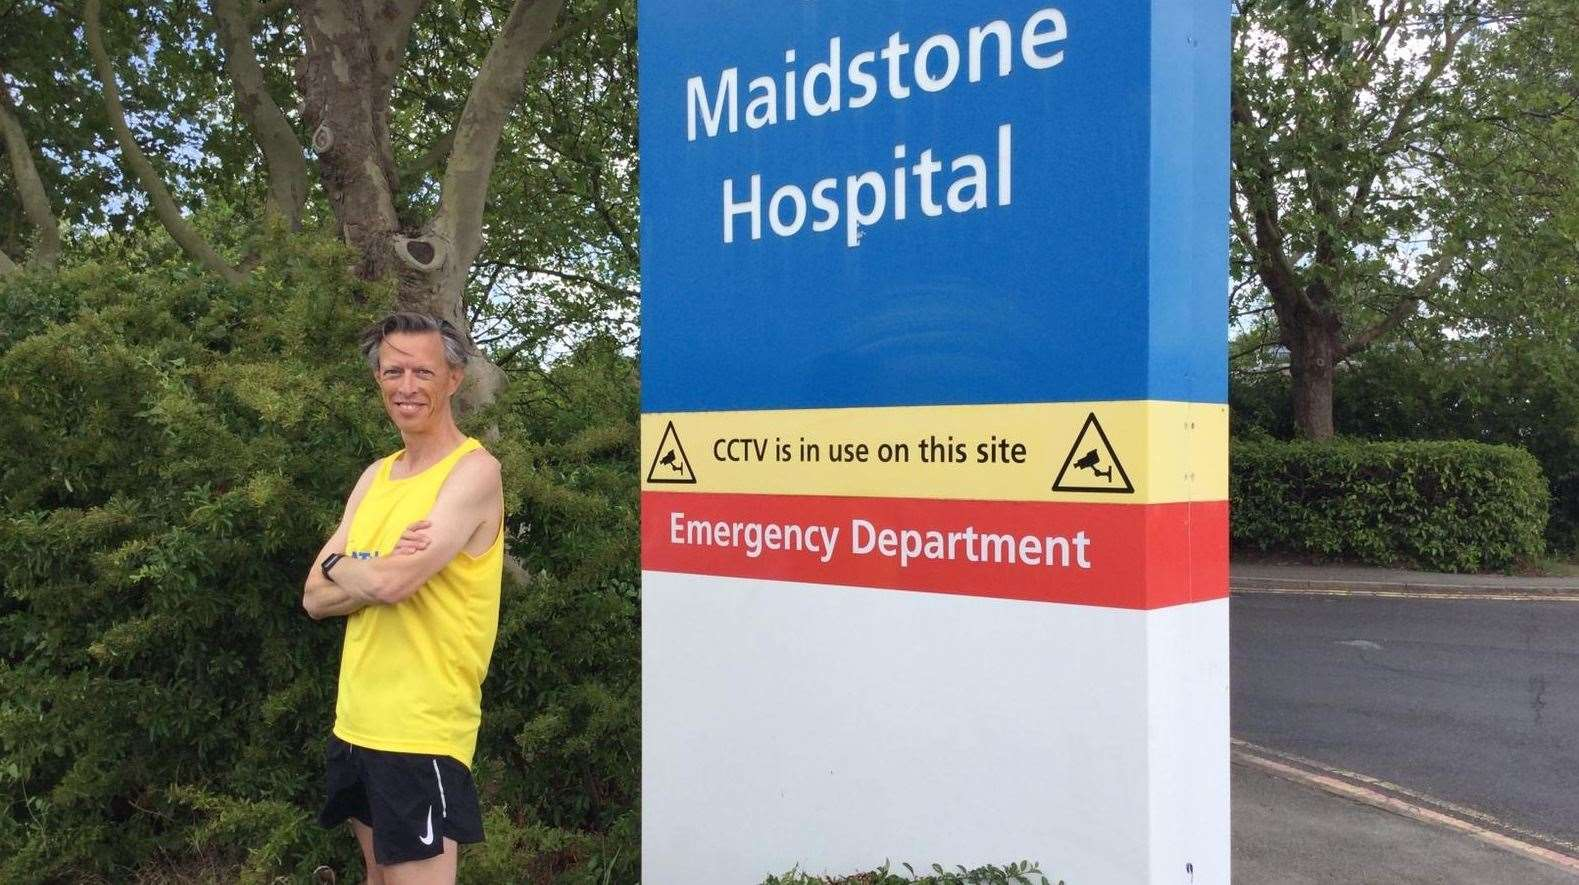 CEO Miles Scott is running the marathon between the trust's sites.